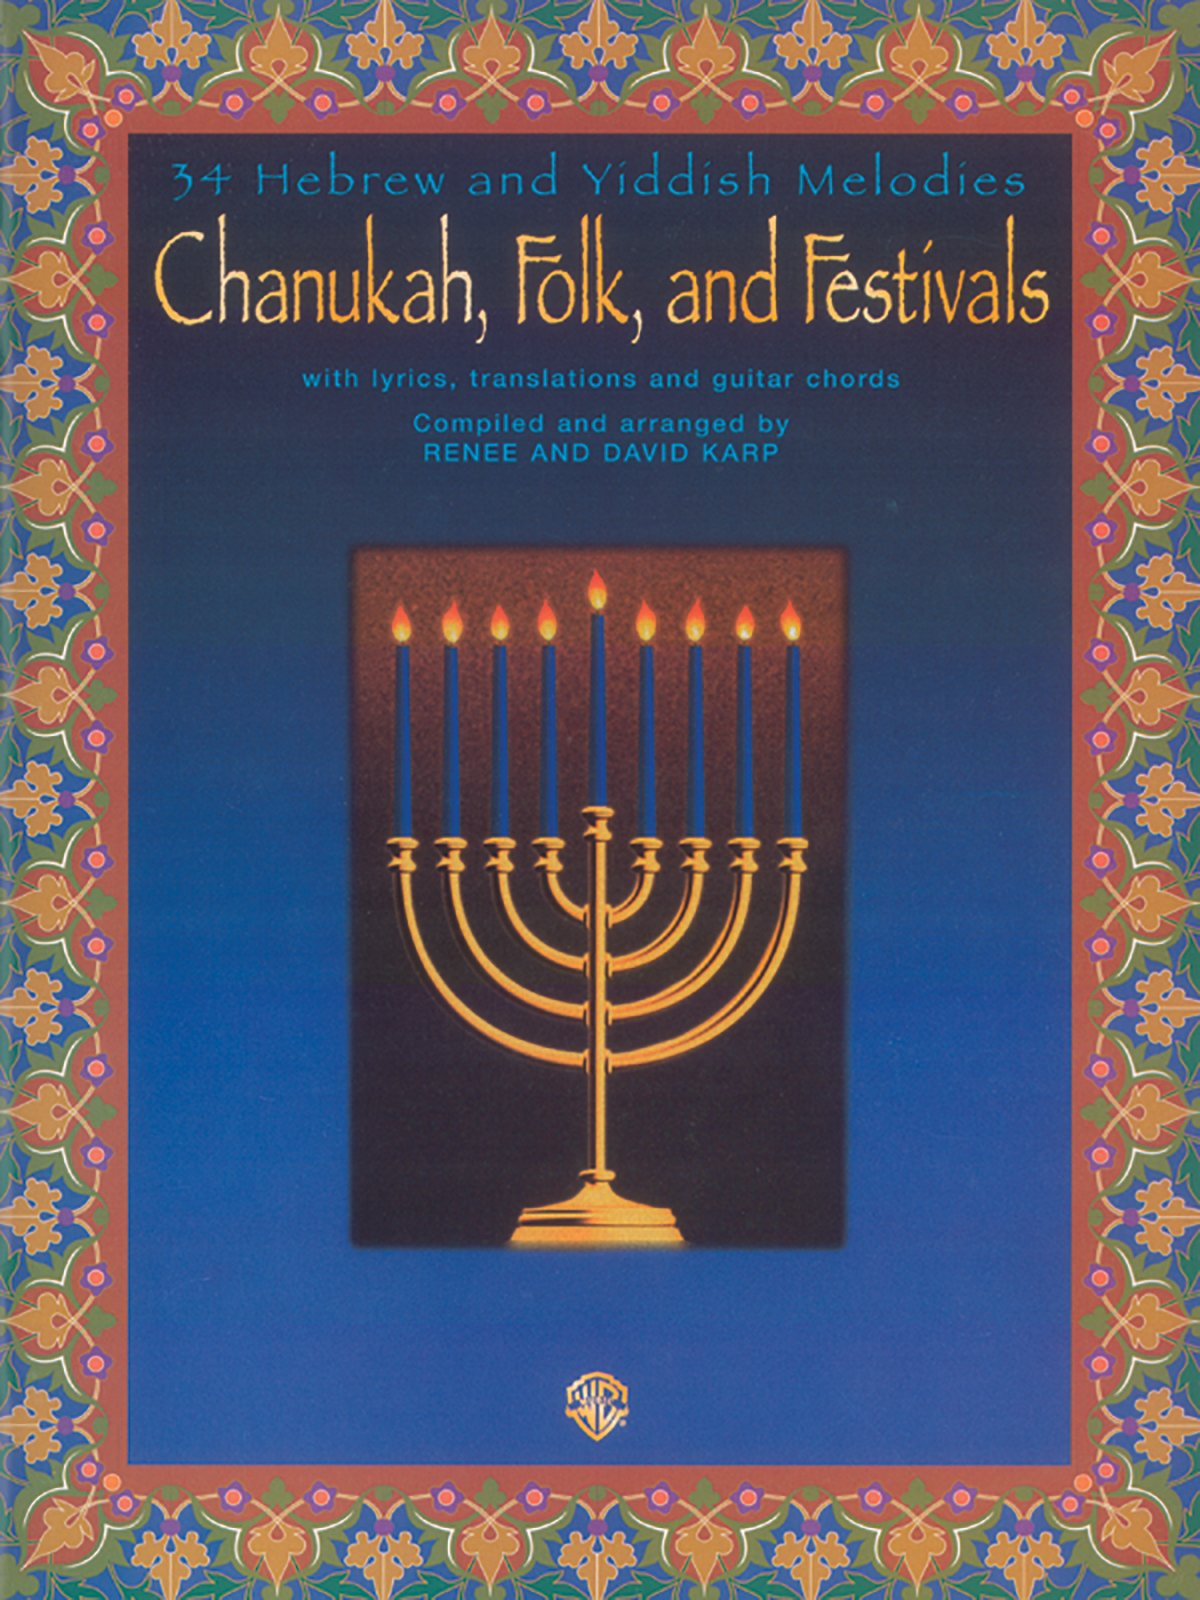 Chanukah Folk And Festivals With Lyrics Translations And Guitar